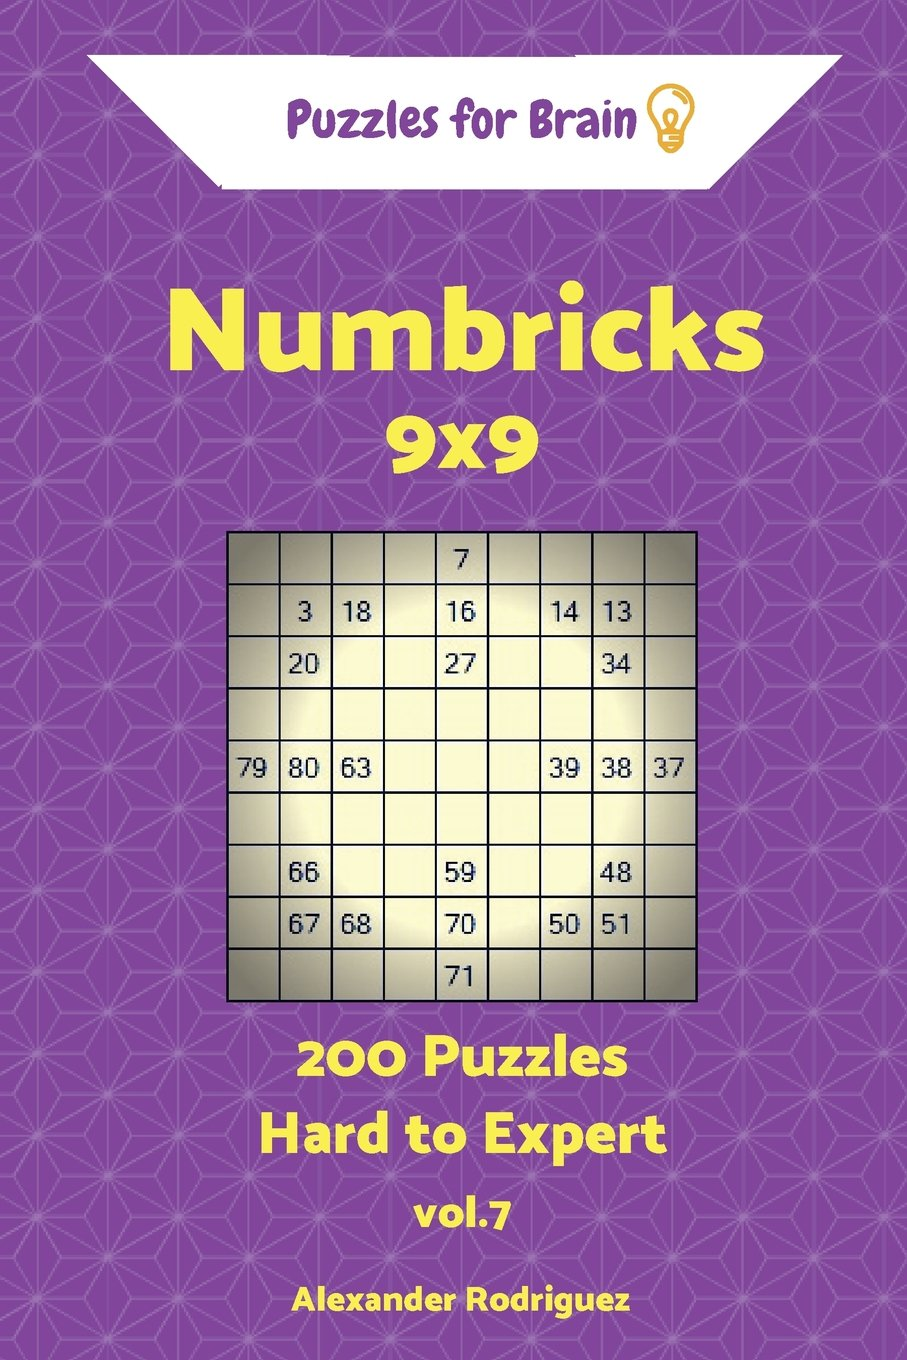 Buy Puzzles for Brain Numbricks - 200 Hard to Expert 9x9 Vol  7